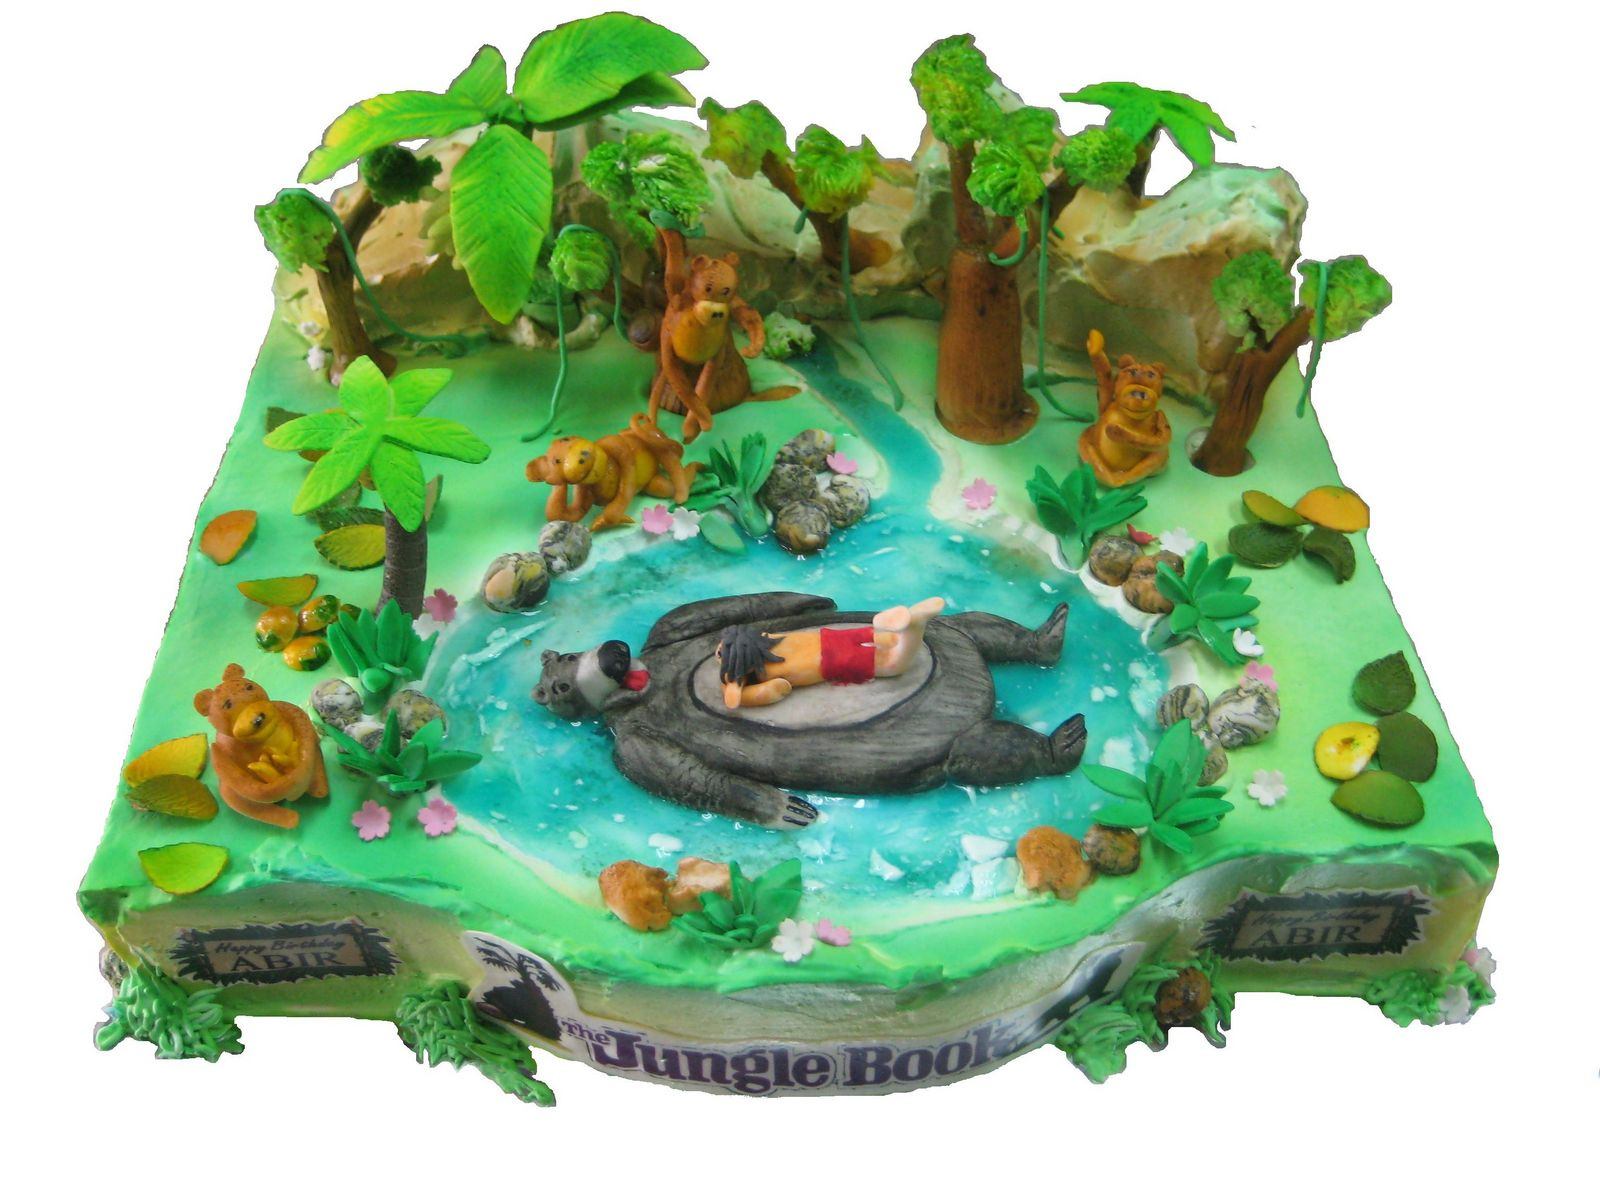 Birthday Cake Ideas Jungle Theme : Jungle Book themed Birthday Cakes and Cupcakes Cakes and ...